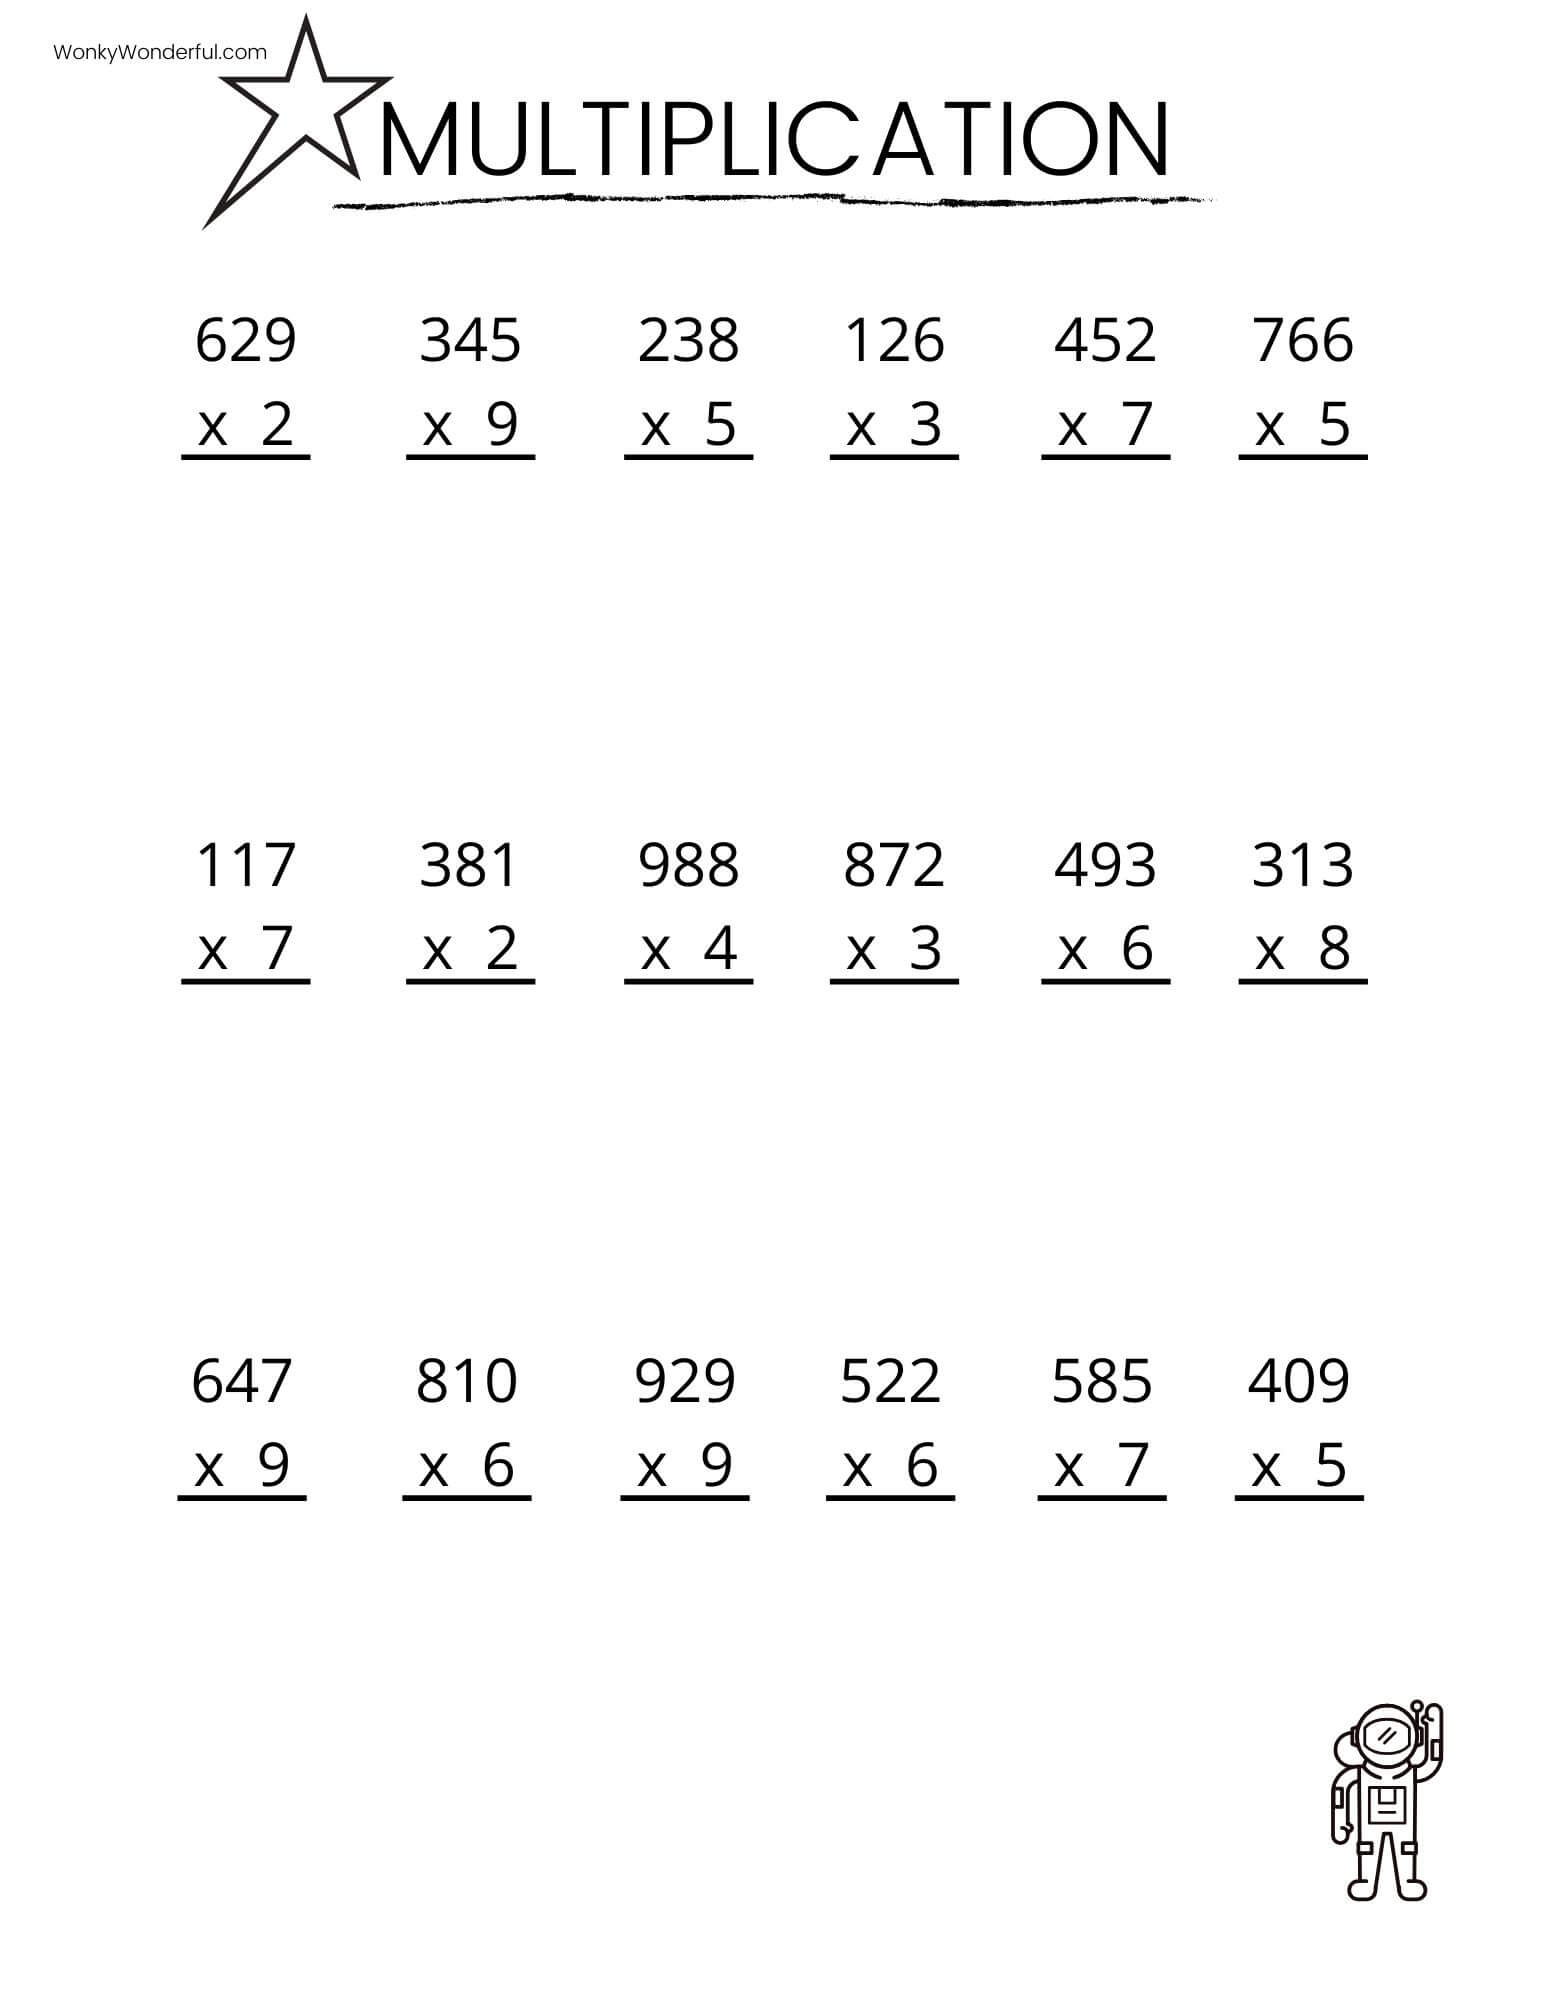 - FREE PRINTABLE MULTIPLICATION WORKSHEETS + WonkyWonderful